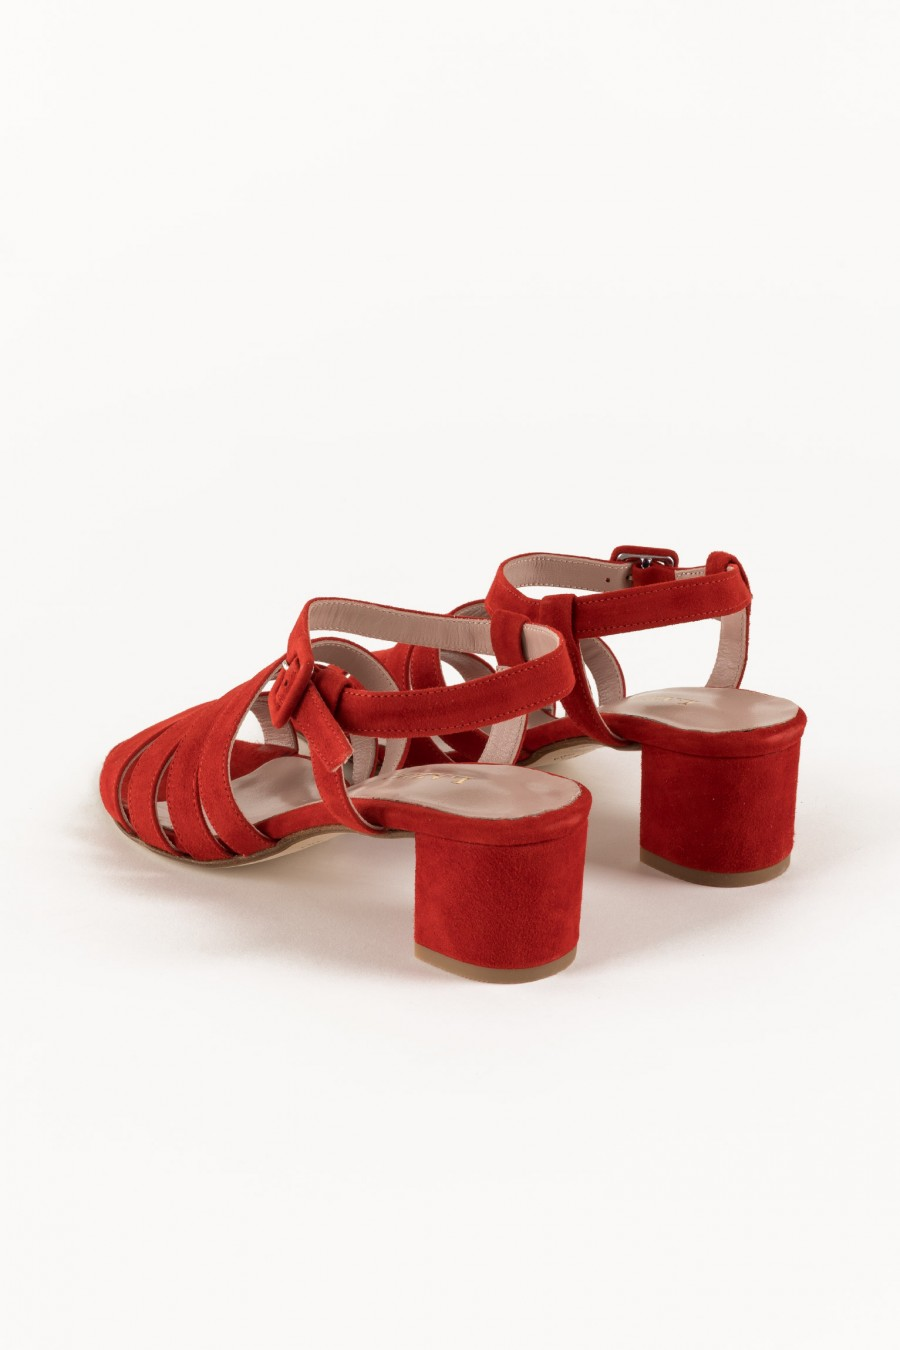 Red sandals with large heel